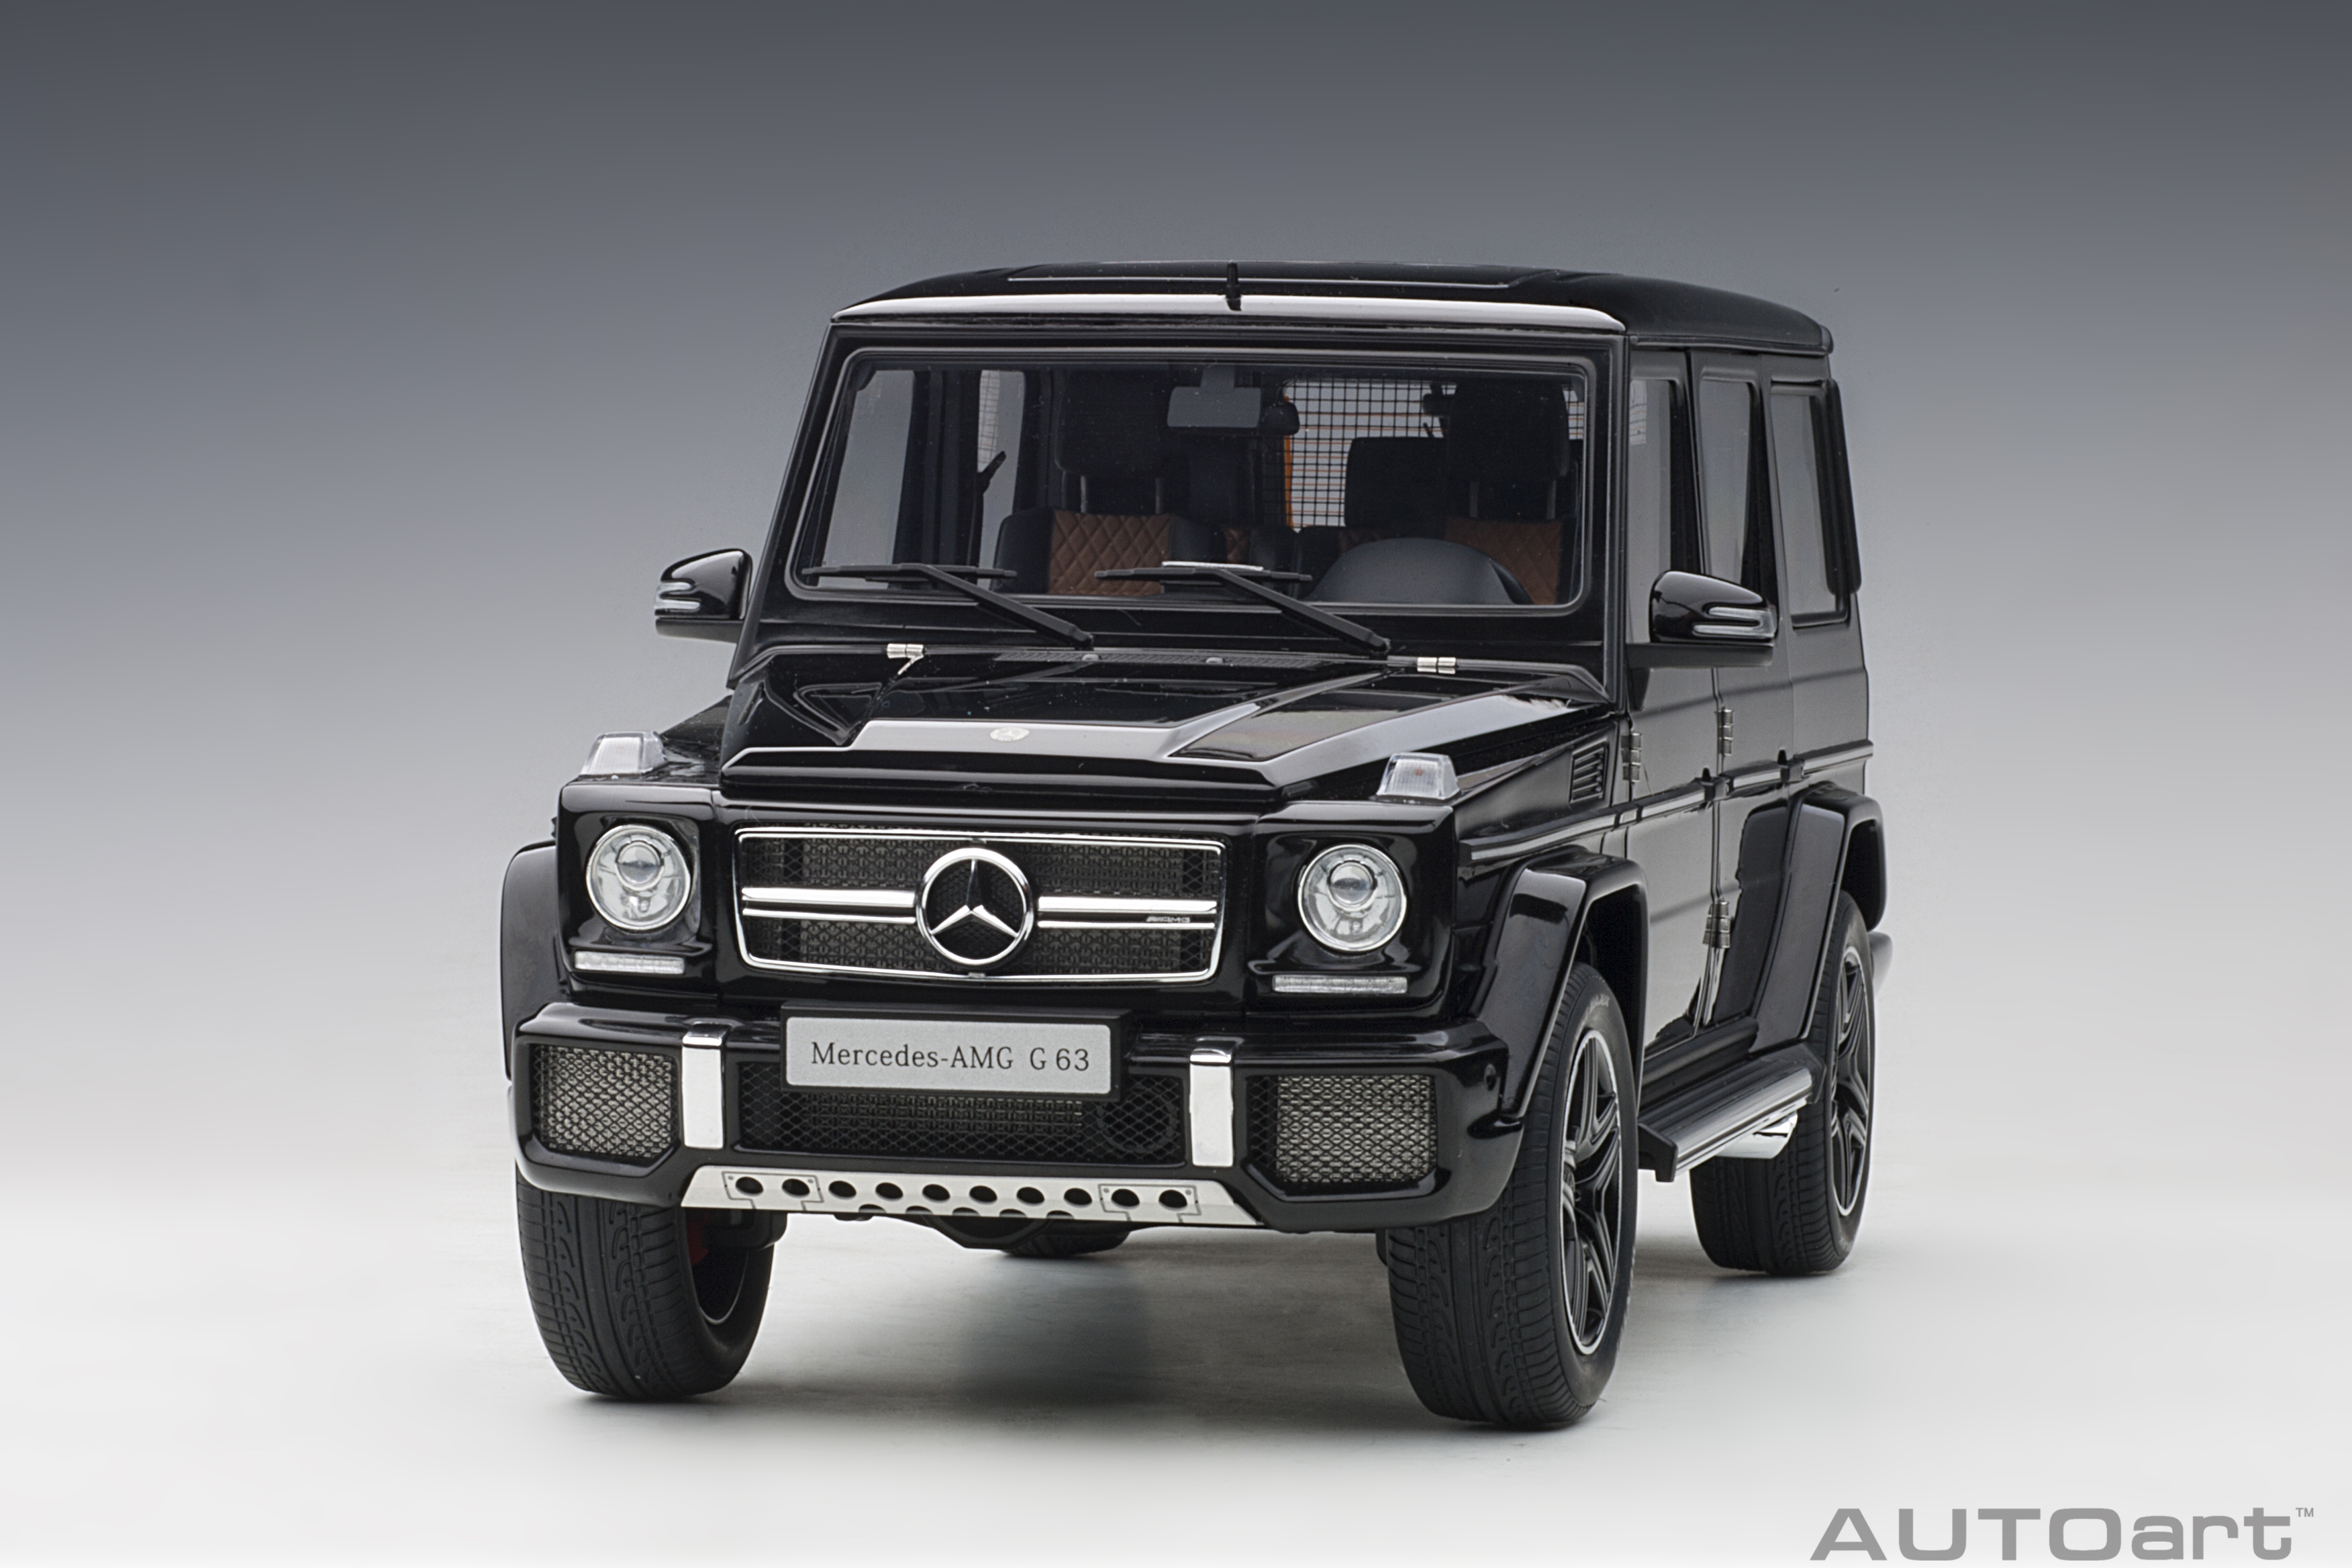 autoart 76322 modellauto mercedes benz g63 amg black 1 18. Black Bedroom Furniture Sets. Home Design Ideas